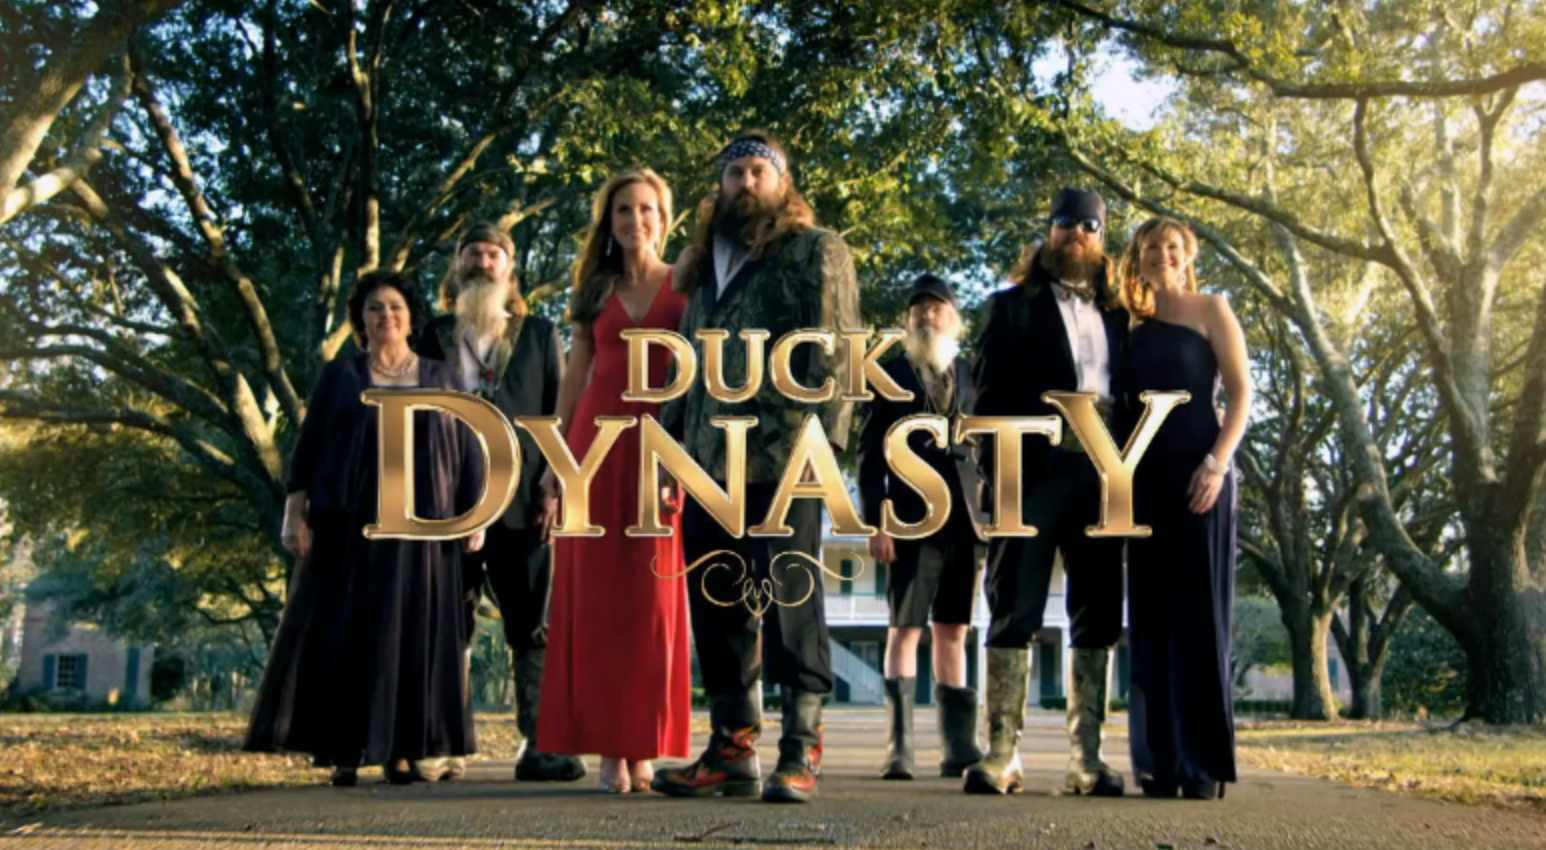 Duck Dynasty: Top Ten Reasons the A&E Show Is Popular